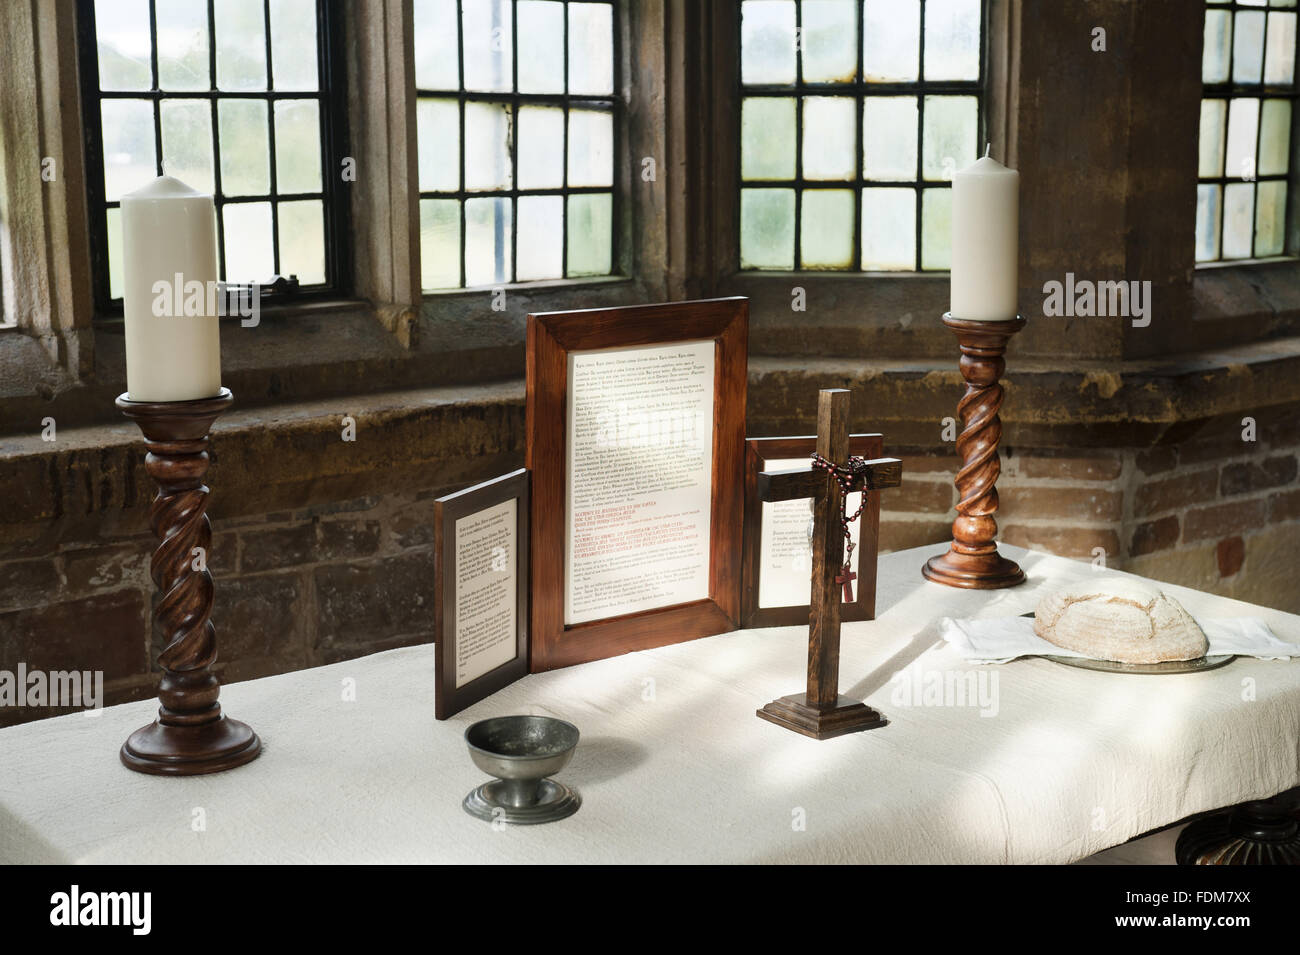 Table in the window of the Tower Room laid out as a Roman Catholic altar at Coughton Court, Warwickshire. The Tower - Stock Image